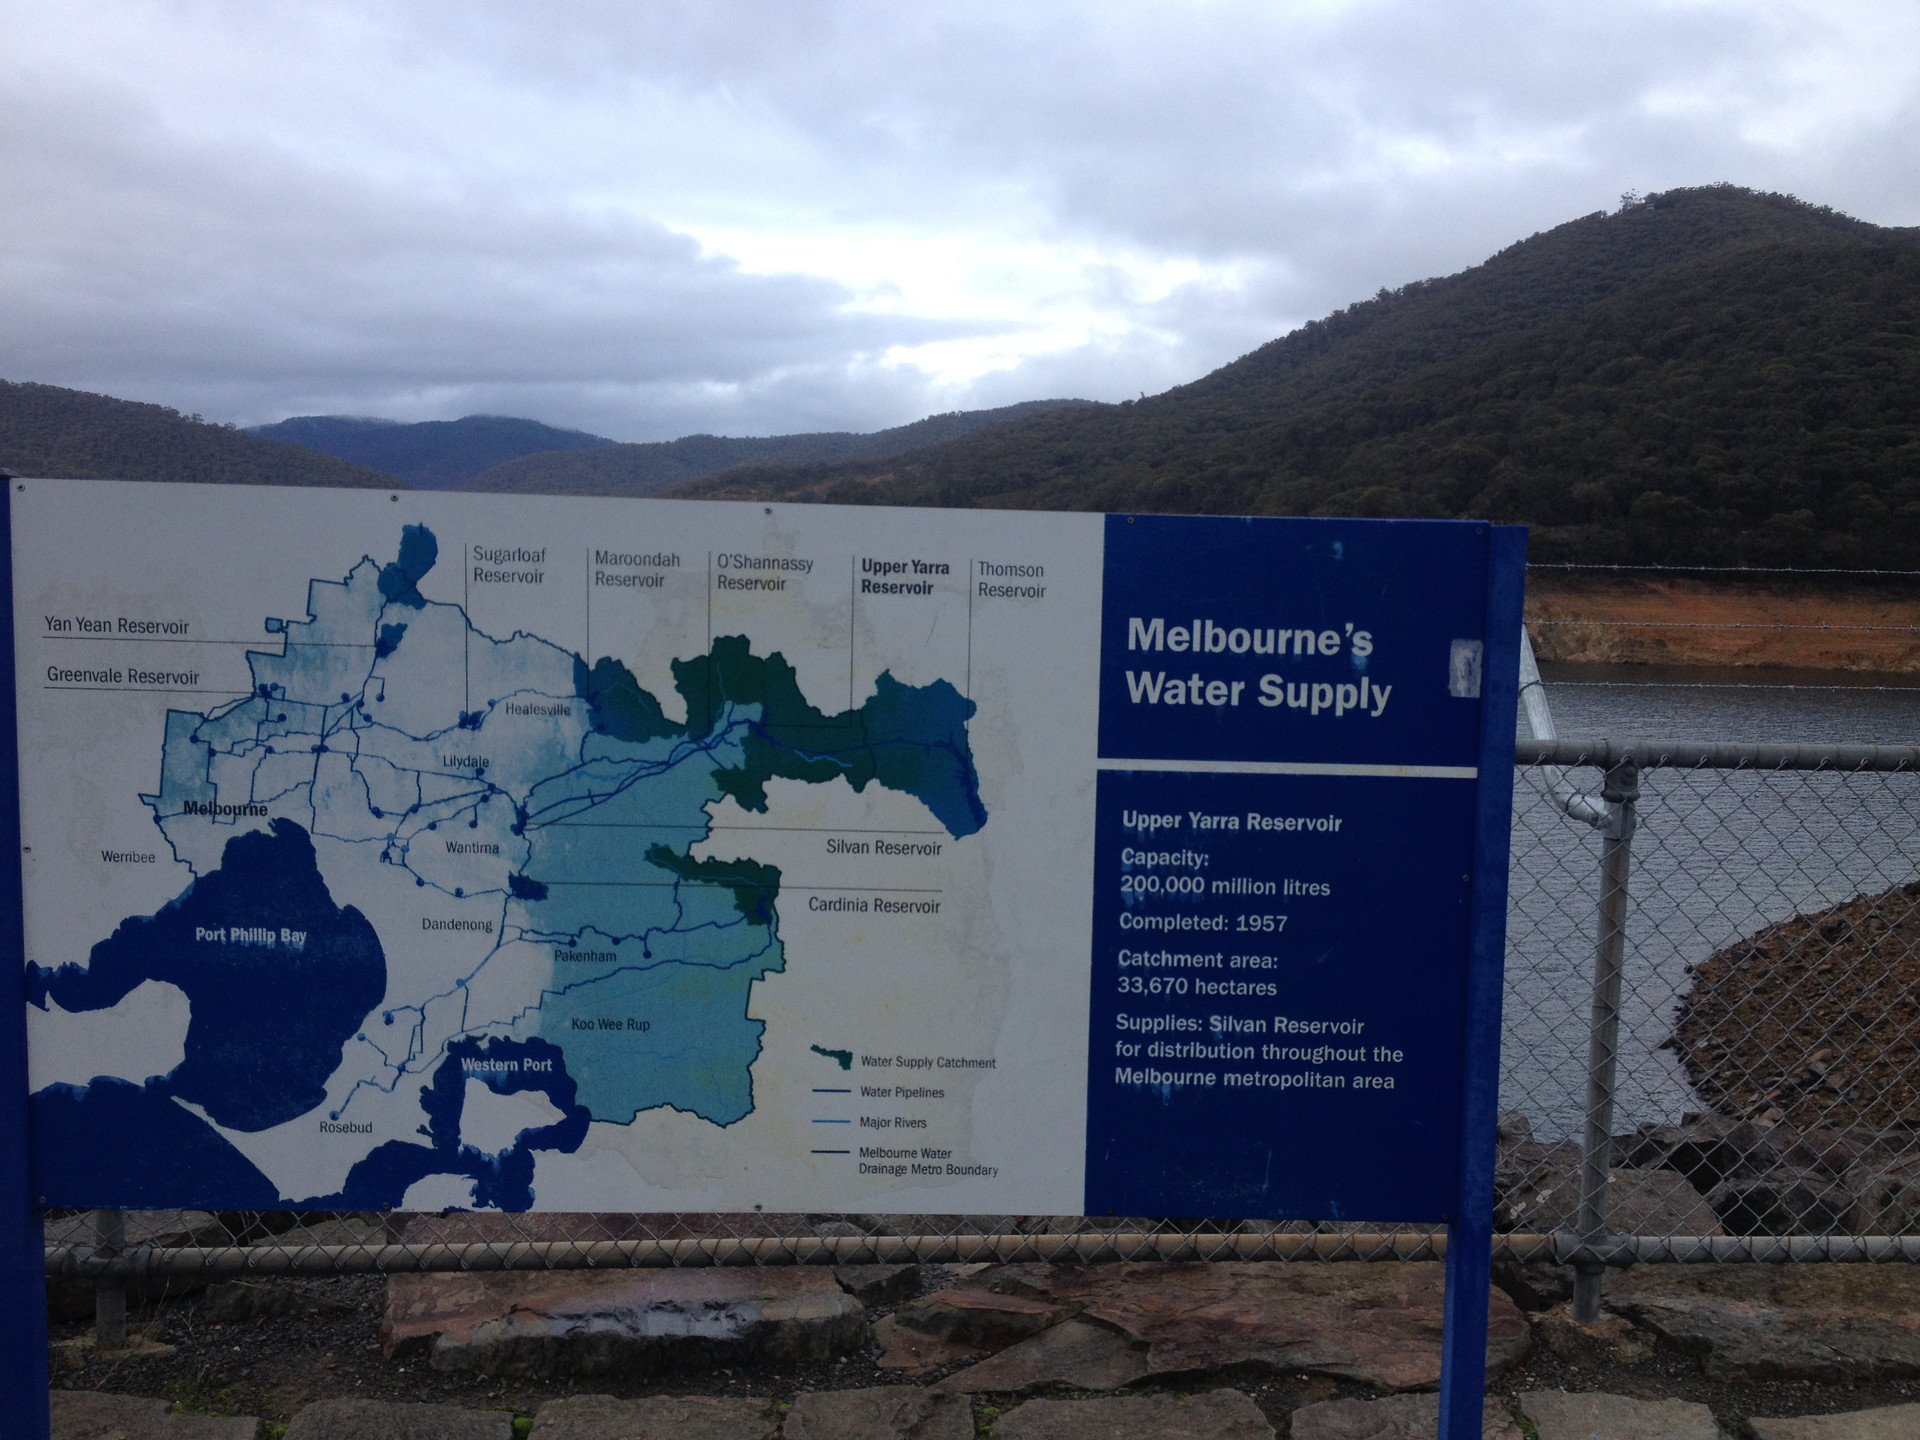 Visit to a reservoir providing drinking water for the city of Melbourne in Victoria.